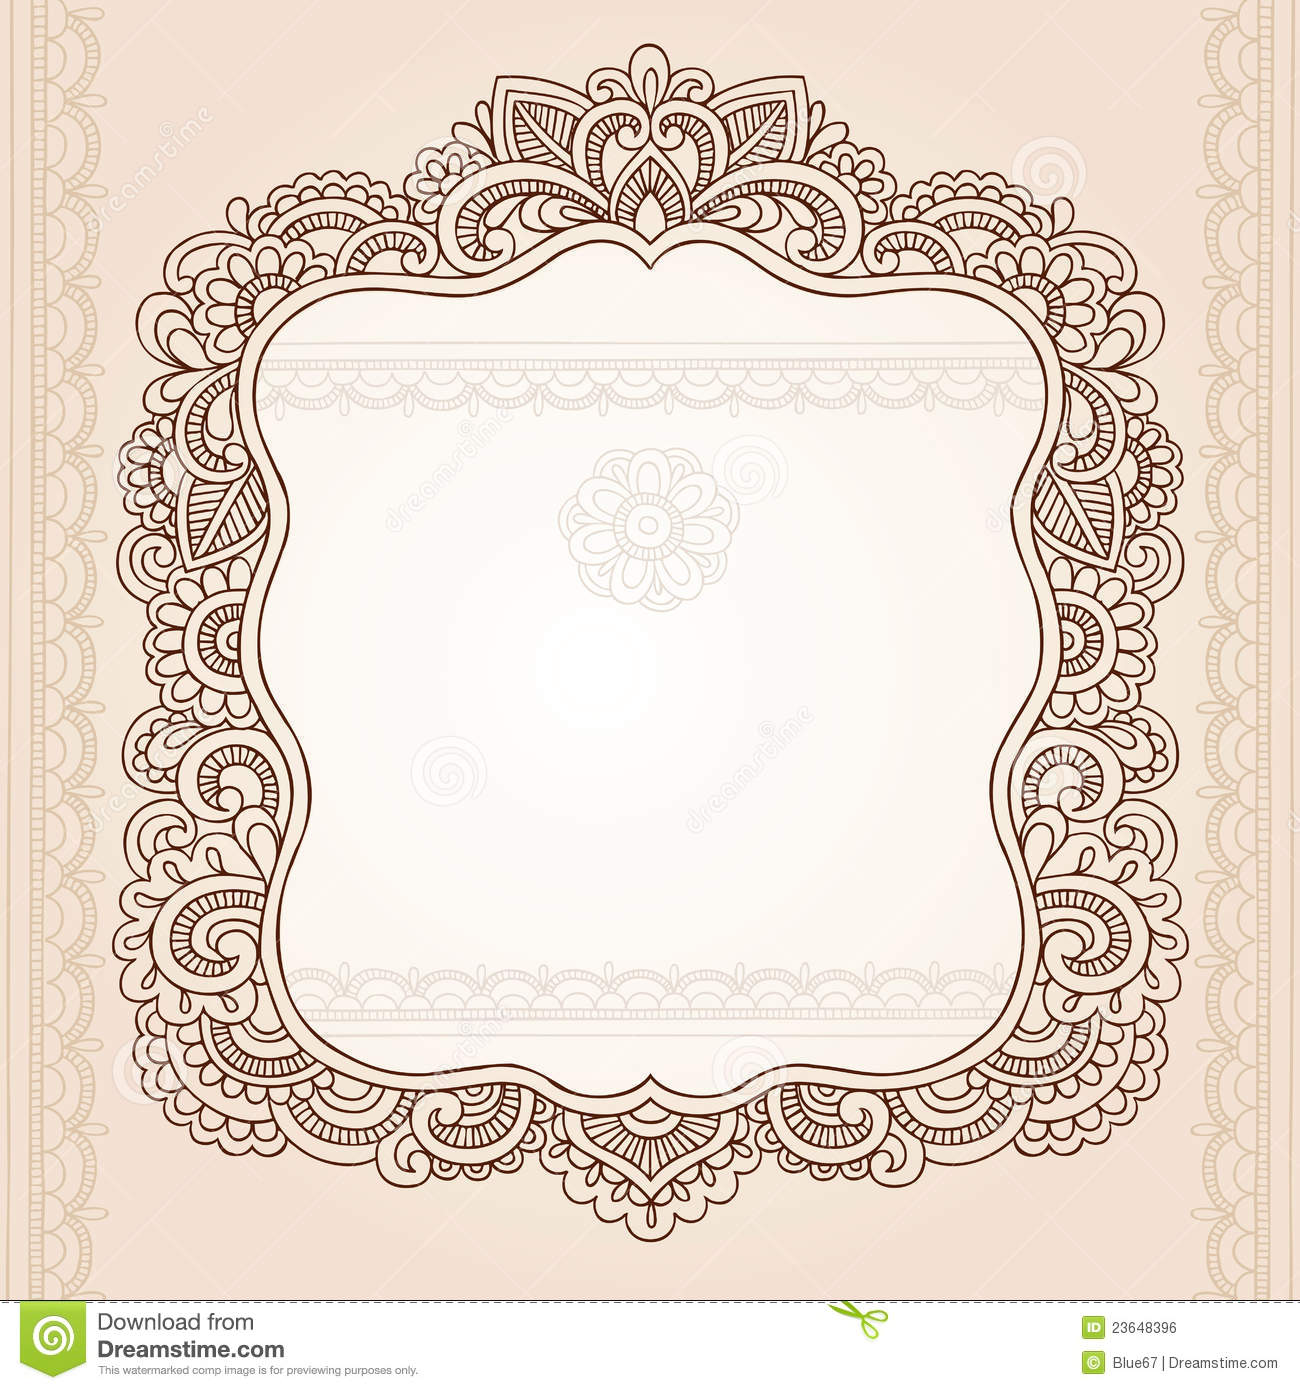 henna tattoo flower frame doodle vector design stock vector illustration of peace frame 23648396. Black Bedroom Furniture Sets. Home Design Ideas